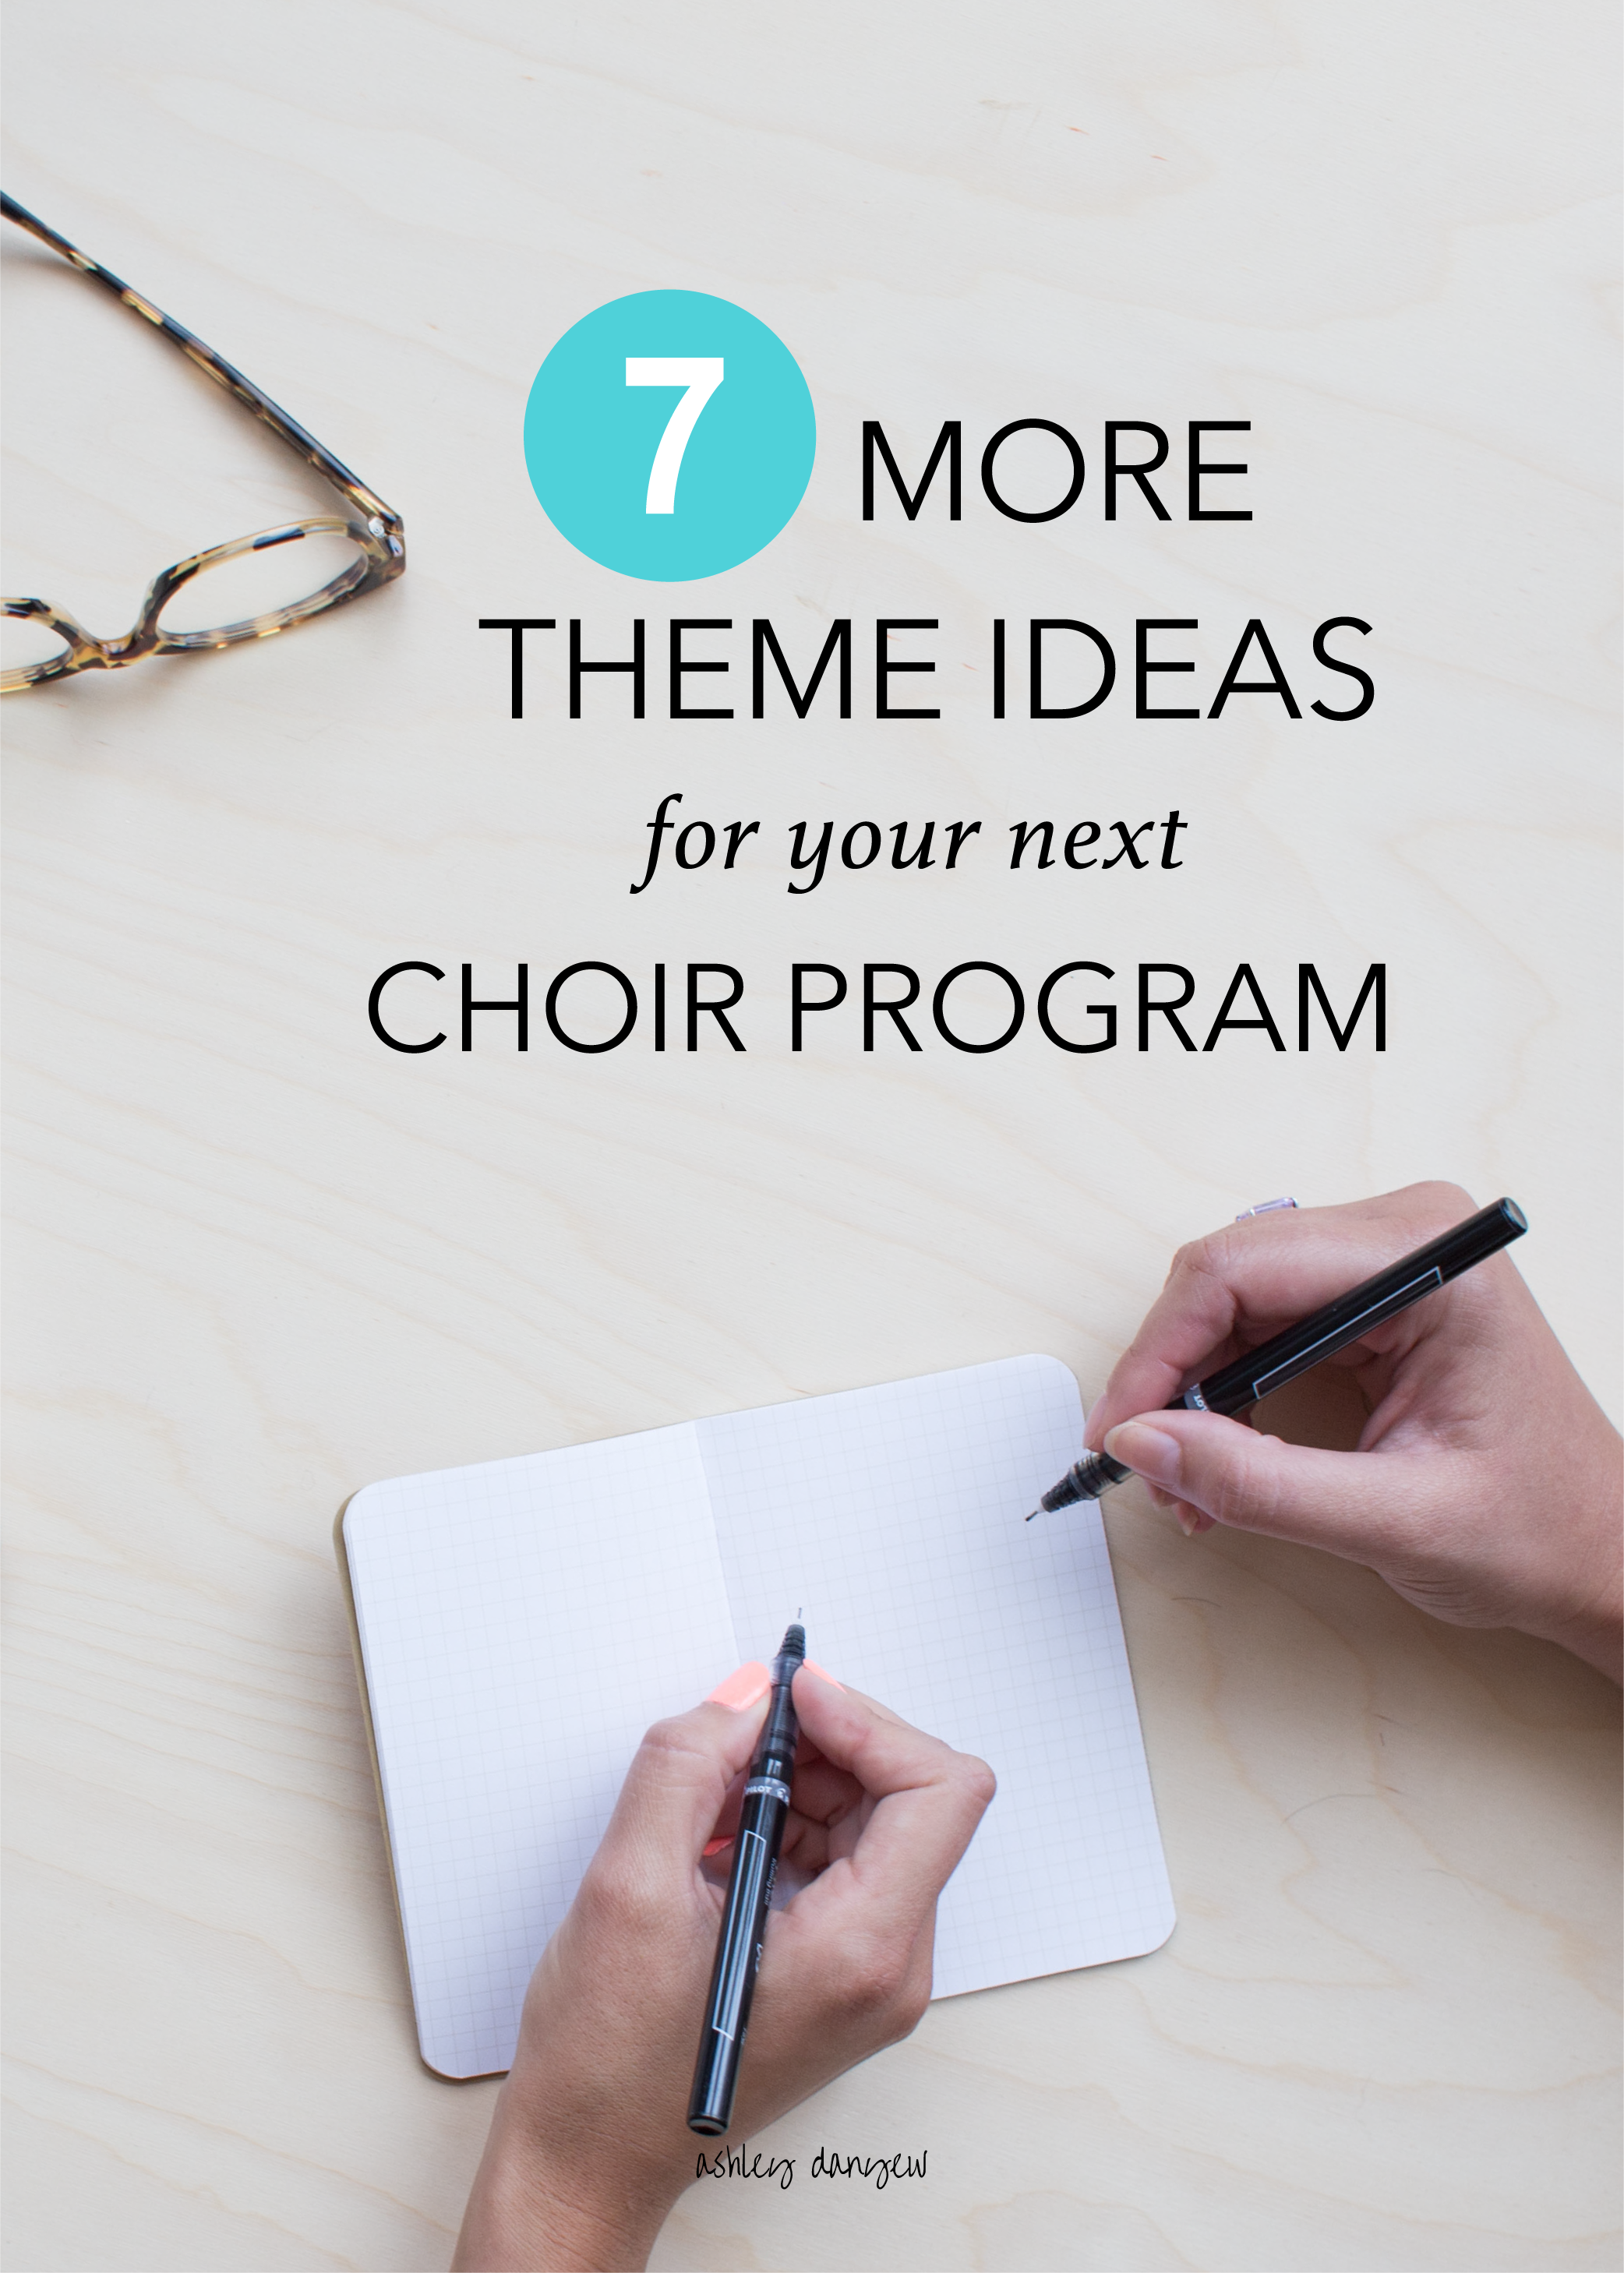 7 More Theme Ideas for Your Next Choir Program-16.png